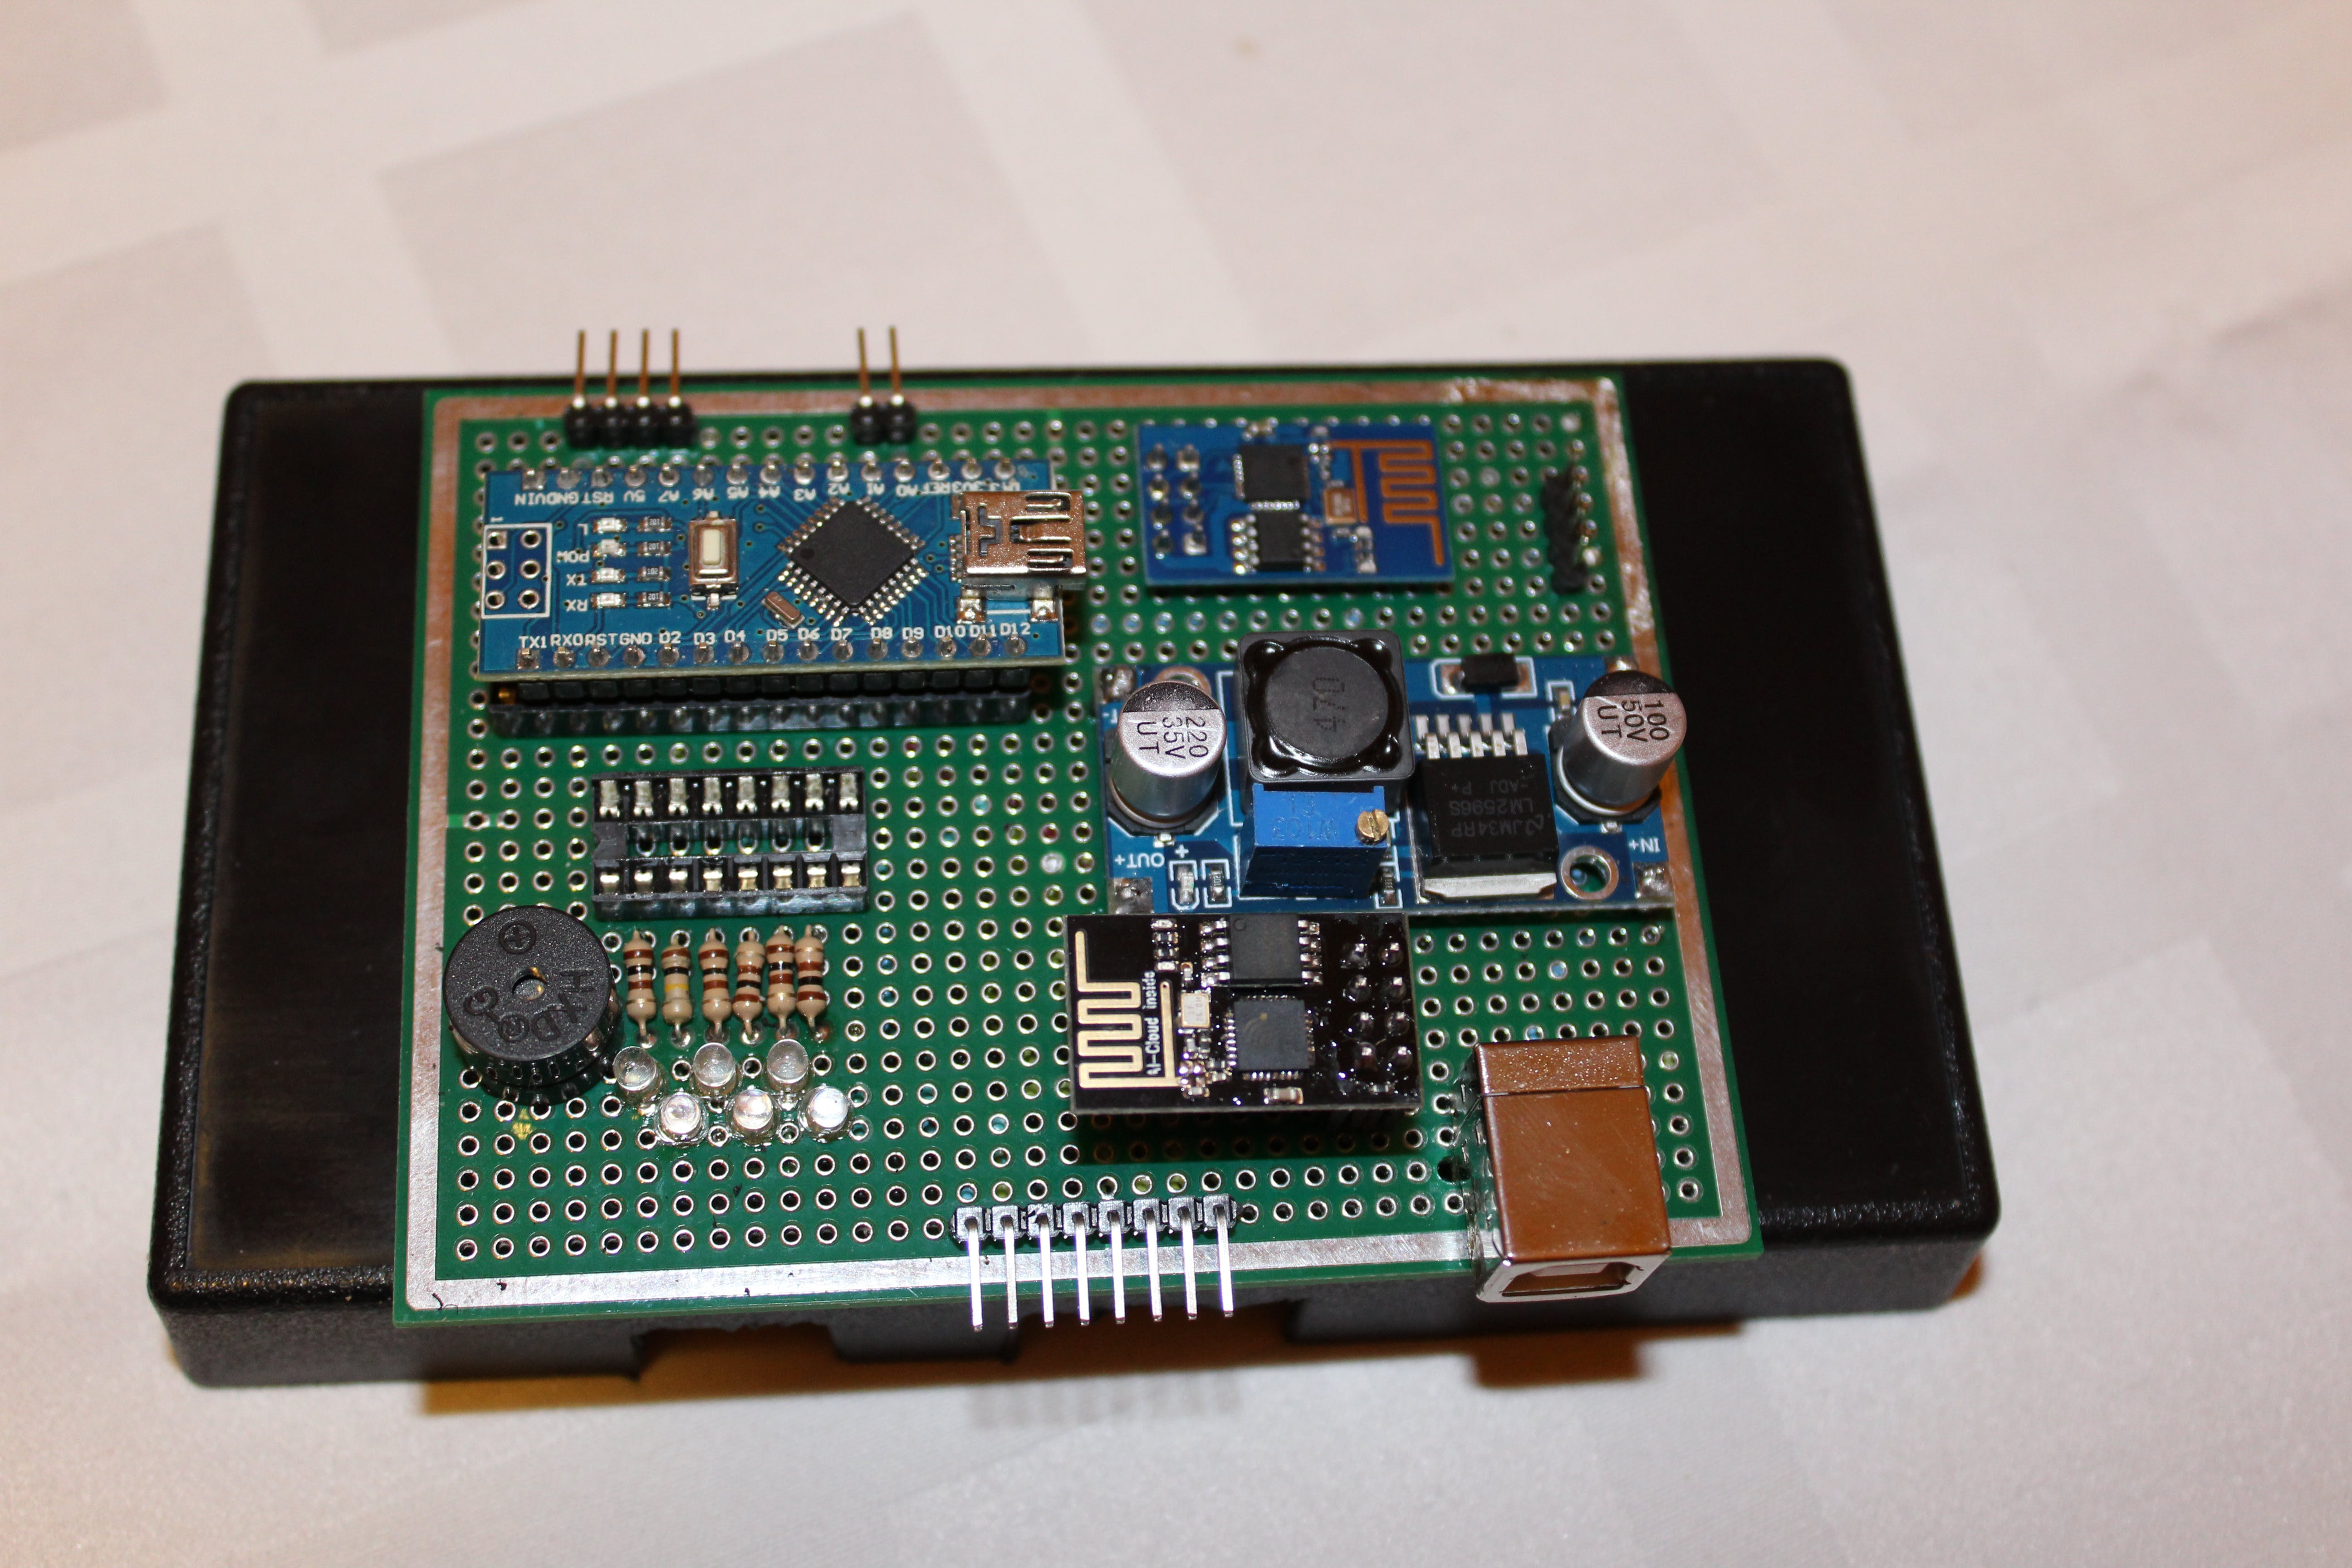 Top view of prototype PCB